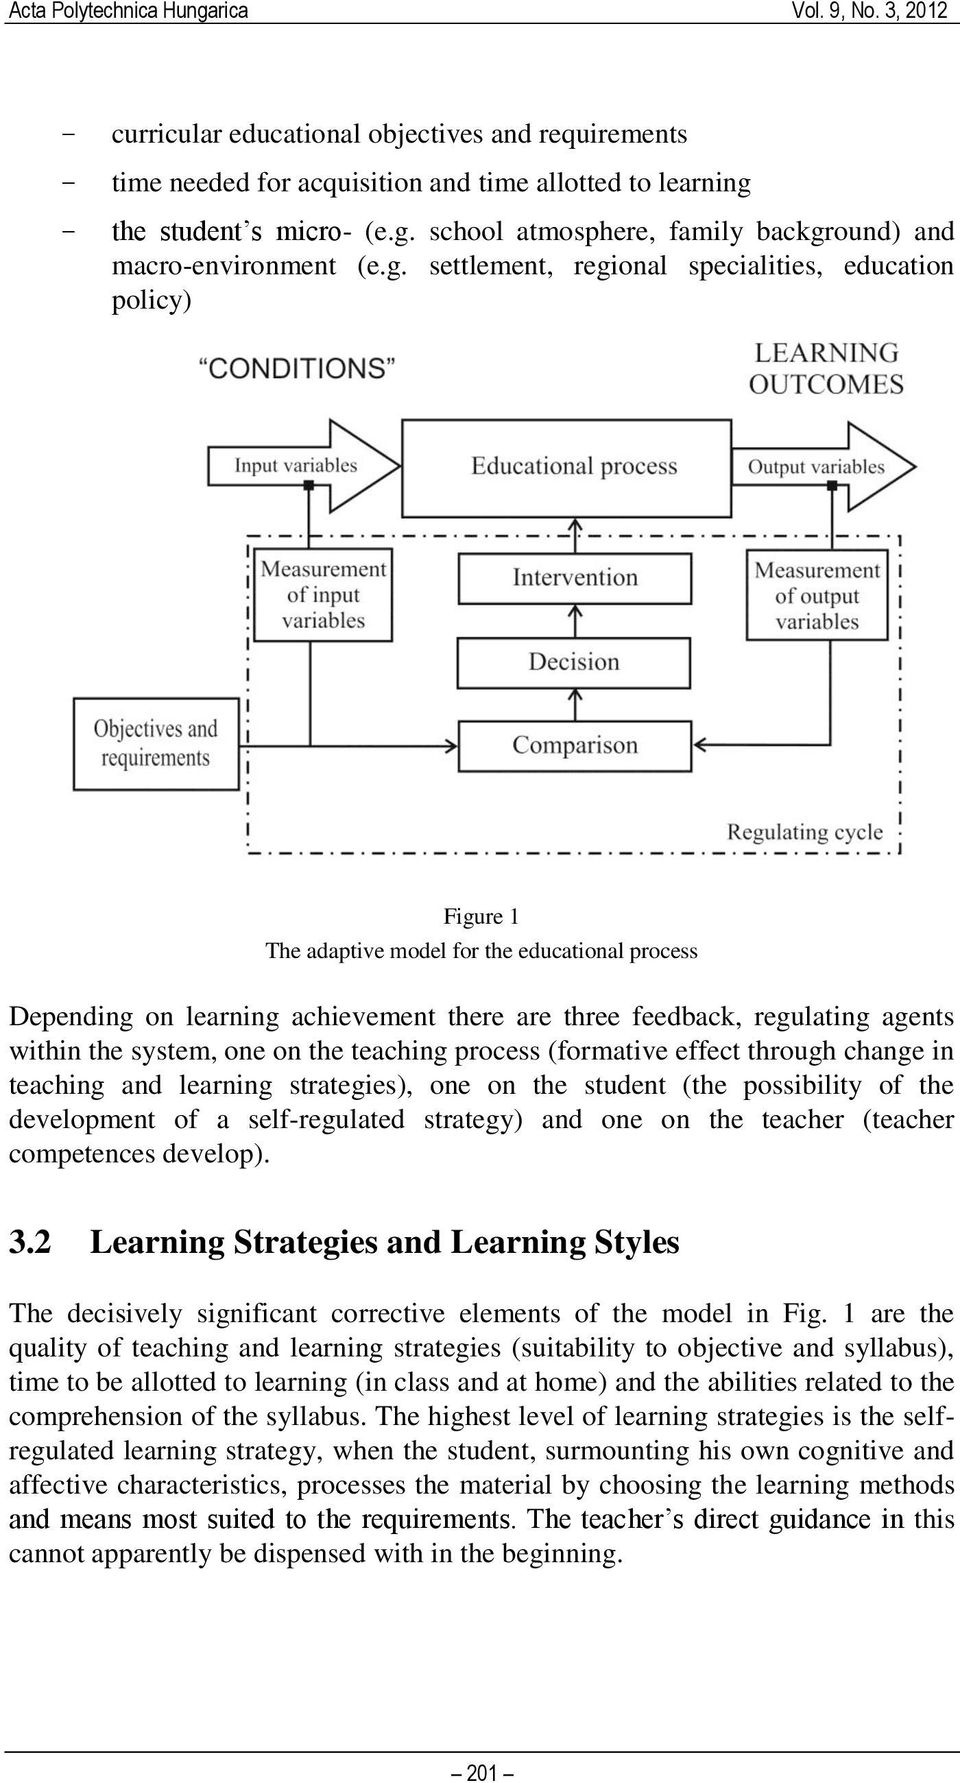 the system, one on the teaching process (formative effect through change in teaching and learning strategies), one on the student (the possibility of the development of a self-regulated strategy) and